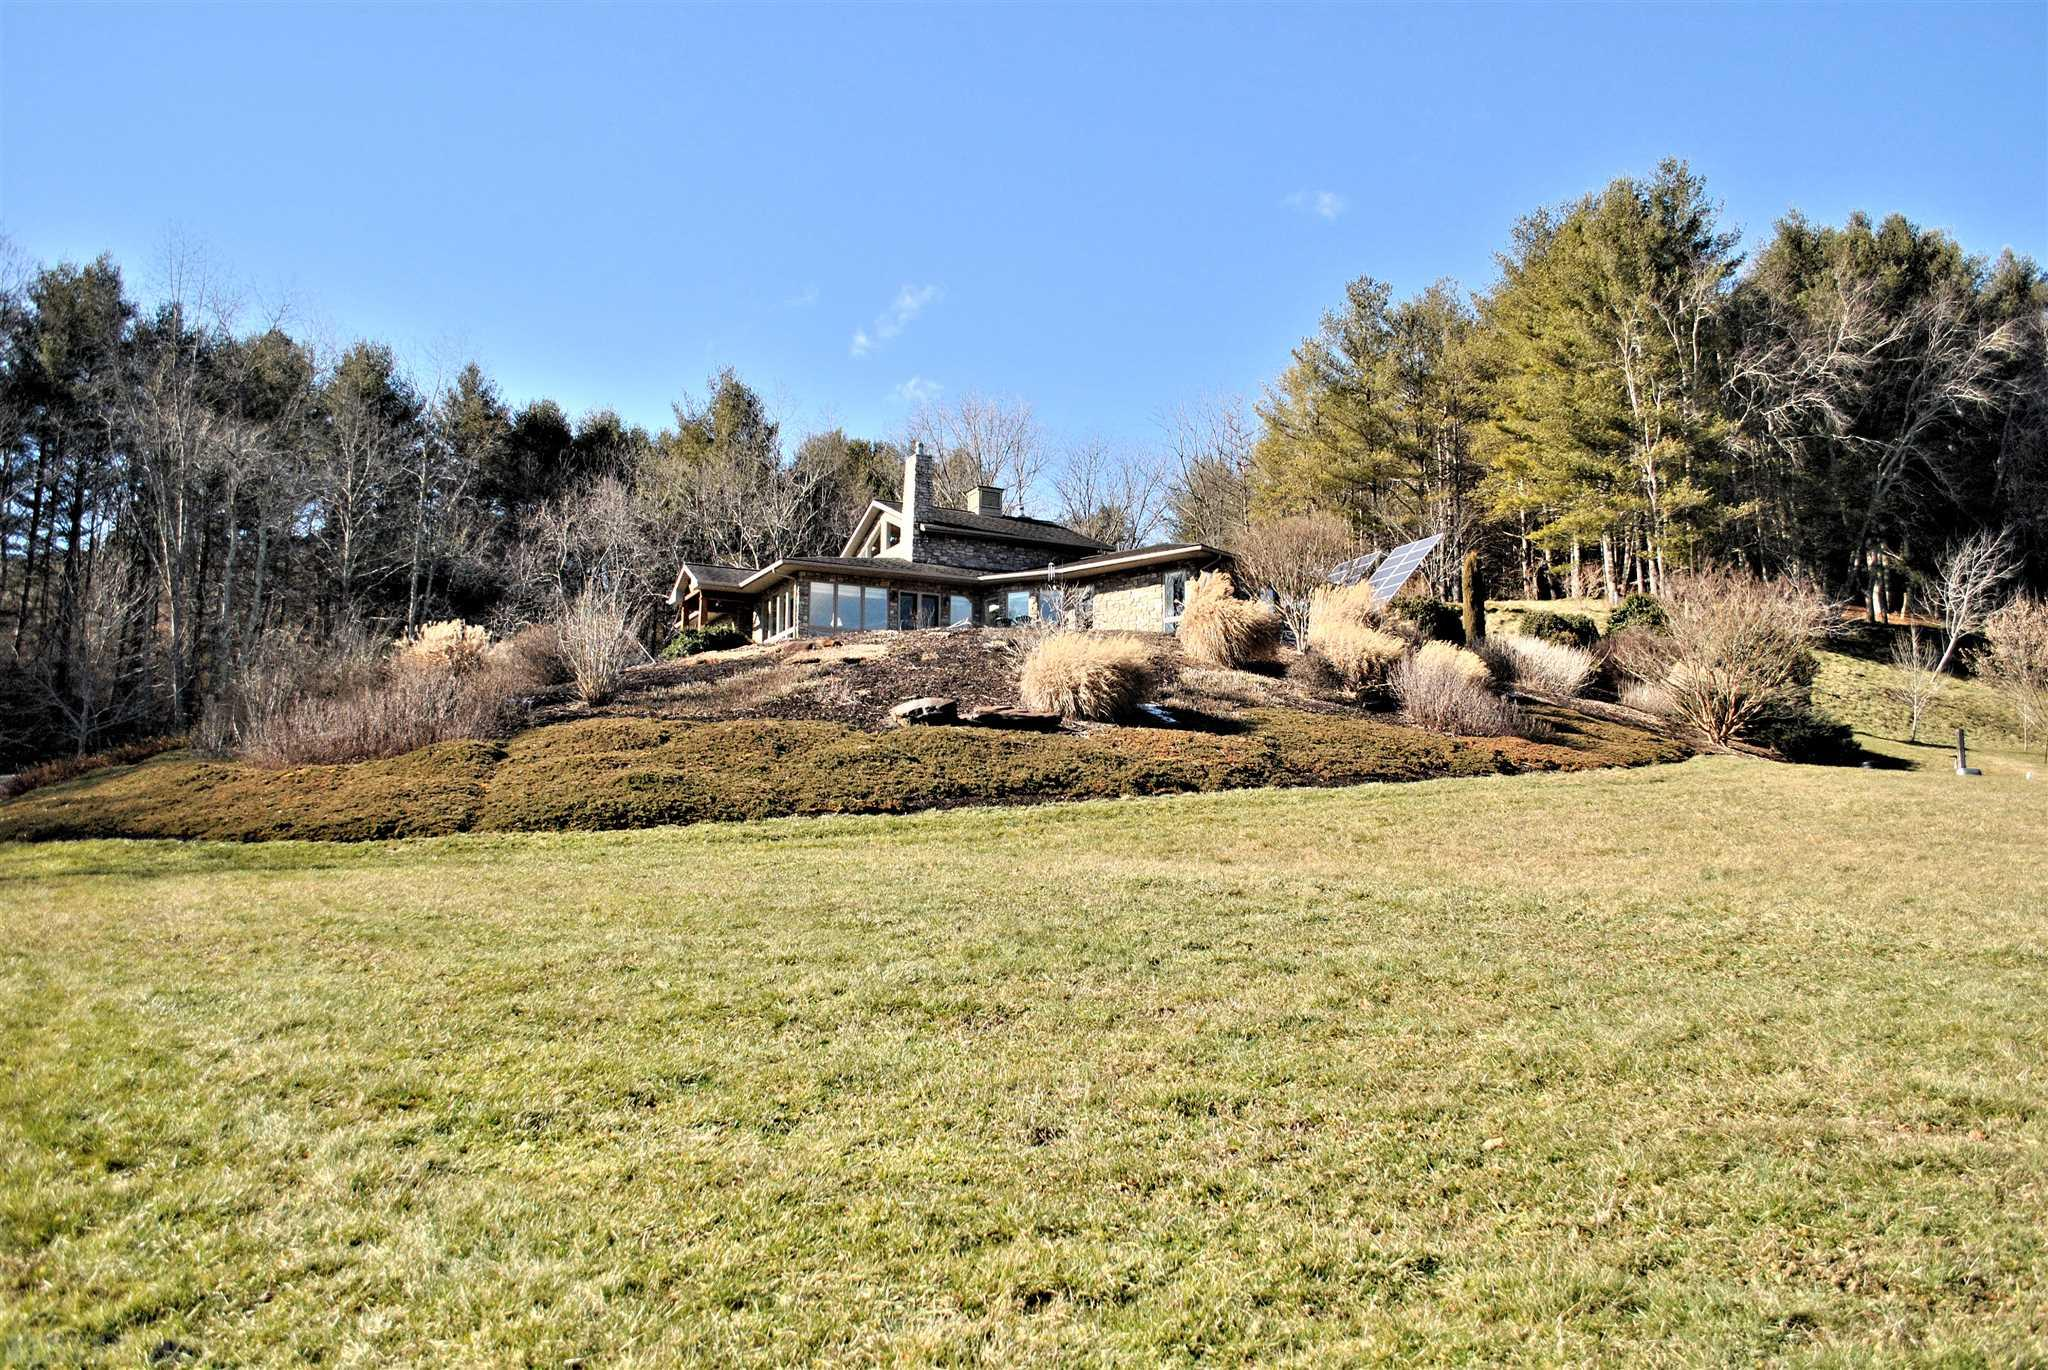 A magnificent, custom designed & built home overlooking Little River on almost 20 acres! Meticulous detail went into every inch of this masterpiece creating energy efficient living including radiant heat under beautiful concrete floors, solar panels, tankless water heater, zoned heating in four rooms, a SCAN  woodstove insert in the living room & a greenhouse! Soak in the sunshine & views of the river from the enormous patio, or through the many windows adorning the living room, dining room or master bedroom. There are many built-ins throughout including an entertainment center in the family room, a gorgeous bookcase in the hall, desks in two quaint offices & a large cabinet in laundry room as well as master bathroom. There is a luxurious, wood-fired  sauna in the second bathroom, root cellar & storage closet in the attached 2.5 car garage & a partially finished attic w/ pull down stairs for additional storage space. This home was lovingly built to last & is an absolute treasure!